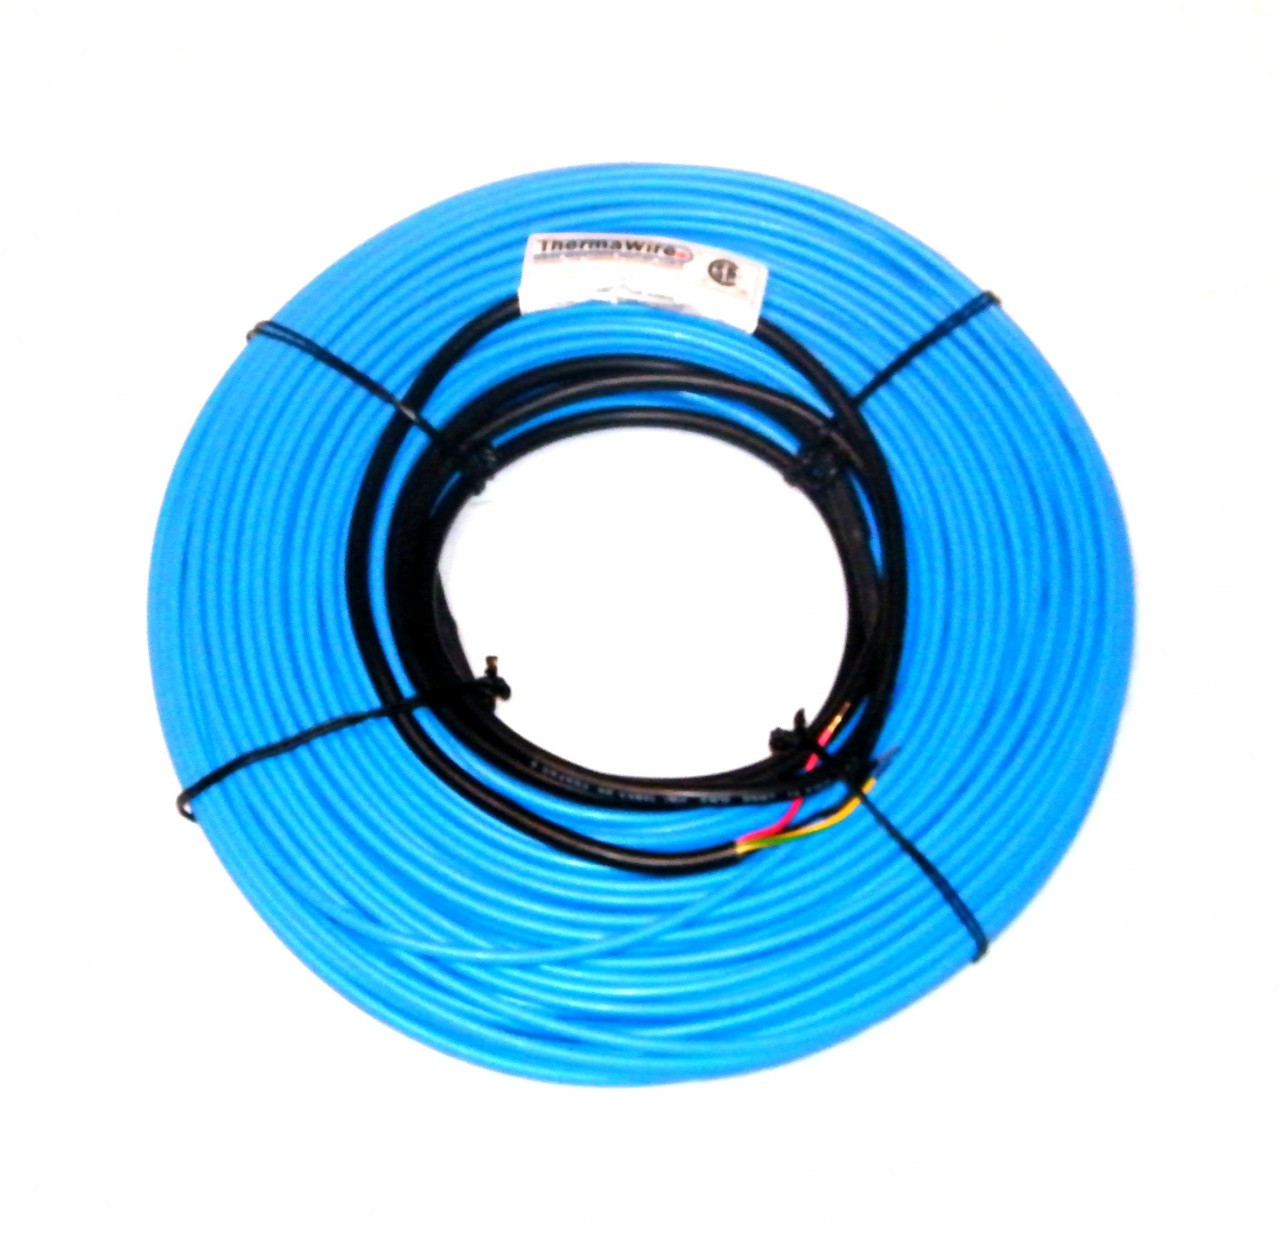 These Thick Heating Cables Are C-CSA-U Certified For